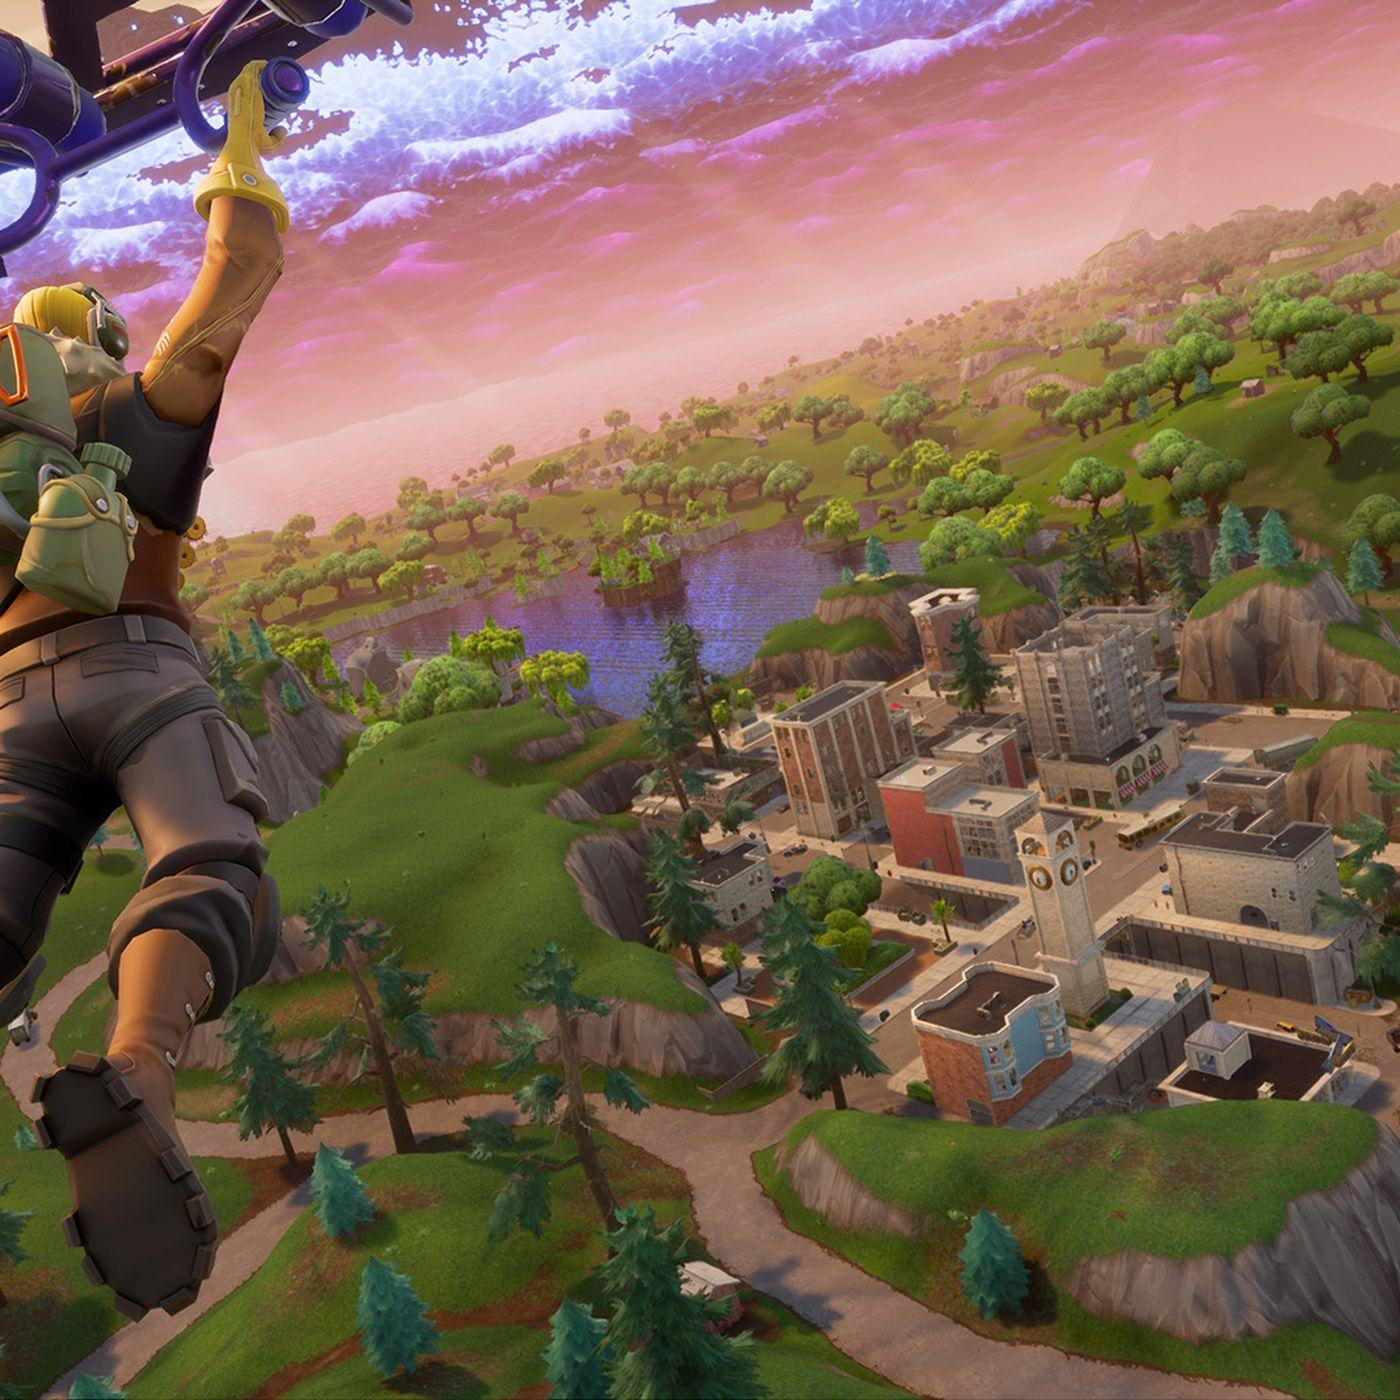 Fortnite players are preparing for Tilted Towers' final hours - Polygon